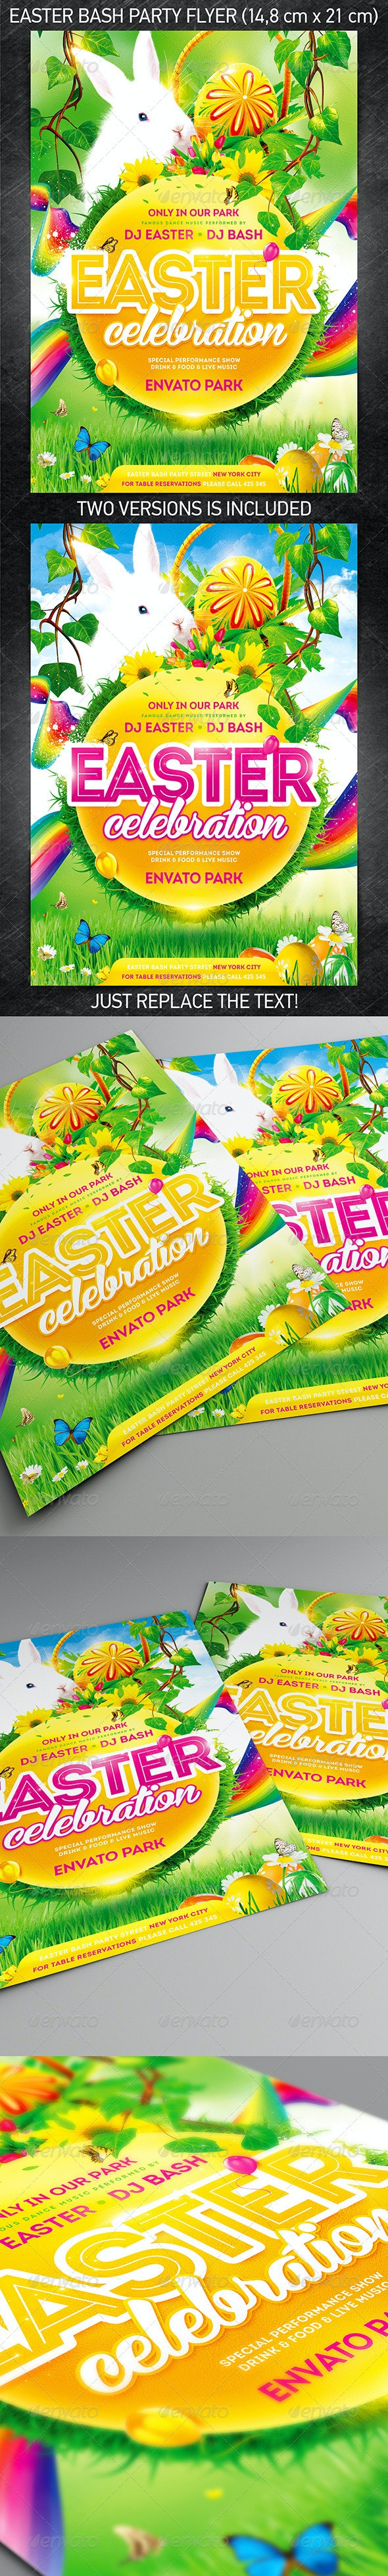 Easter Bash Party Flyer - Holidays Events